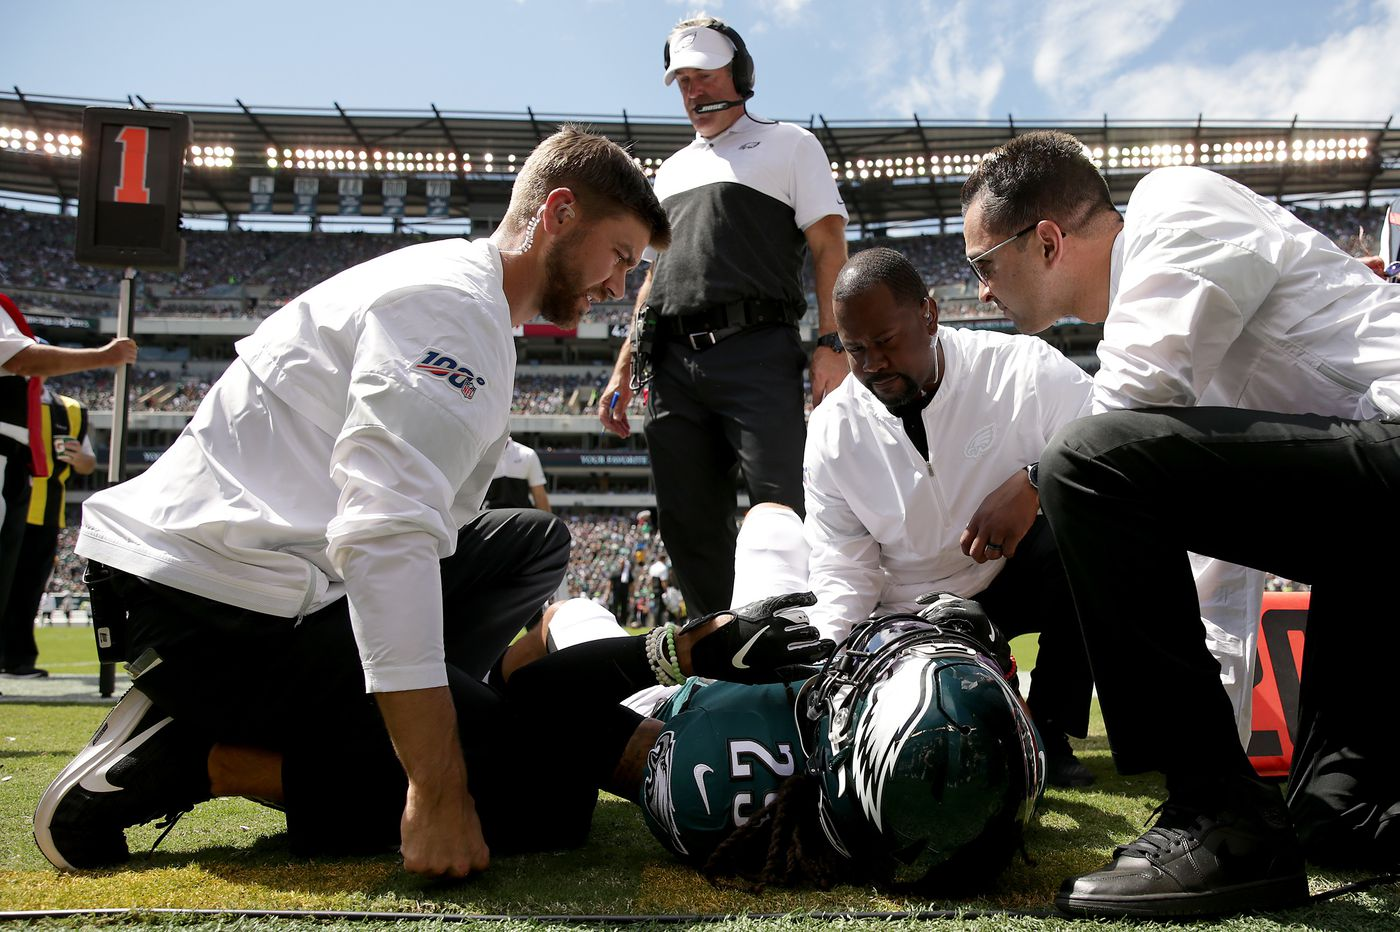 Eagles' injuries have decreased; they've still been part of the story in 2019